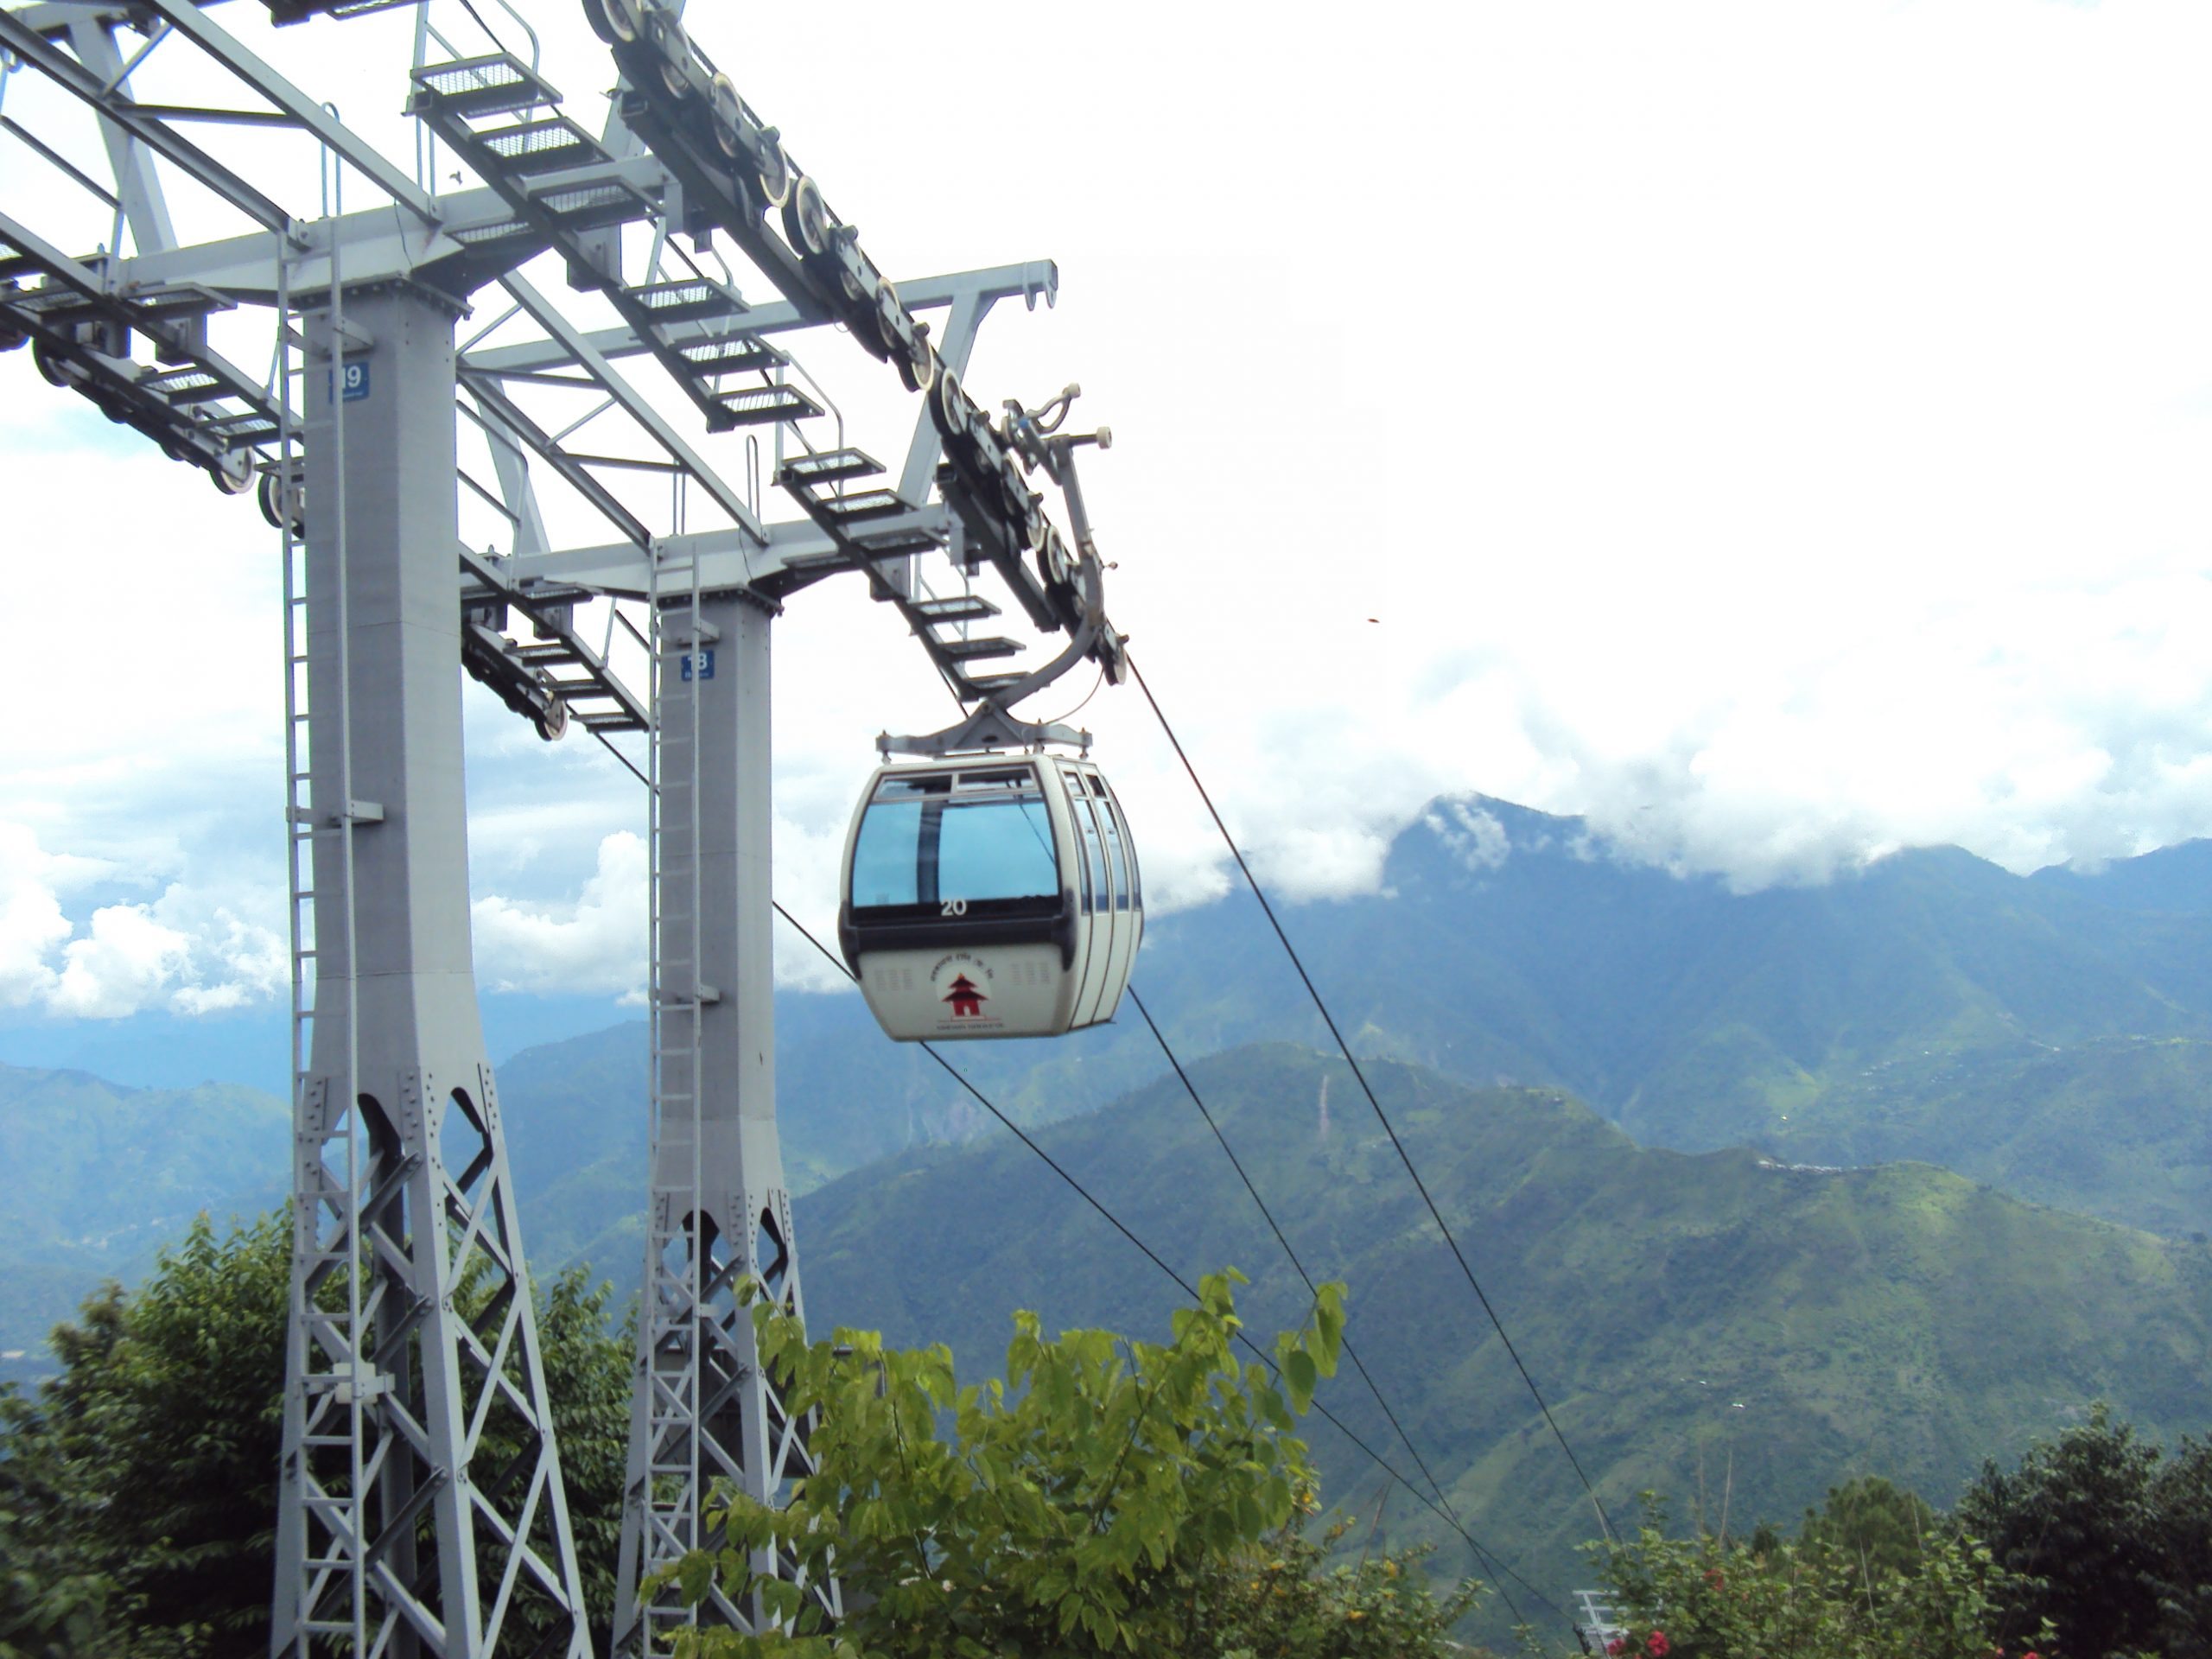 A ropeway in Manakamna temple, Nepal